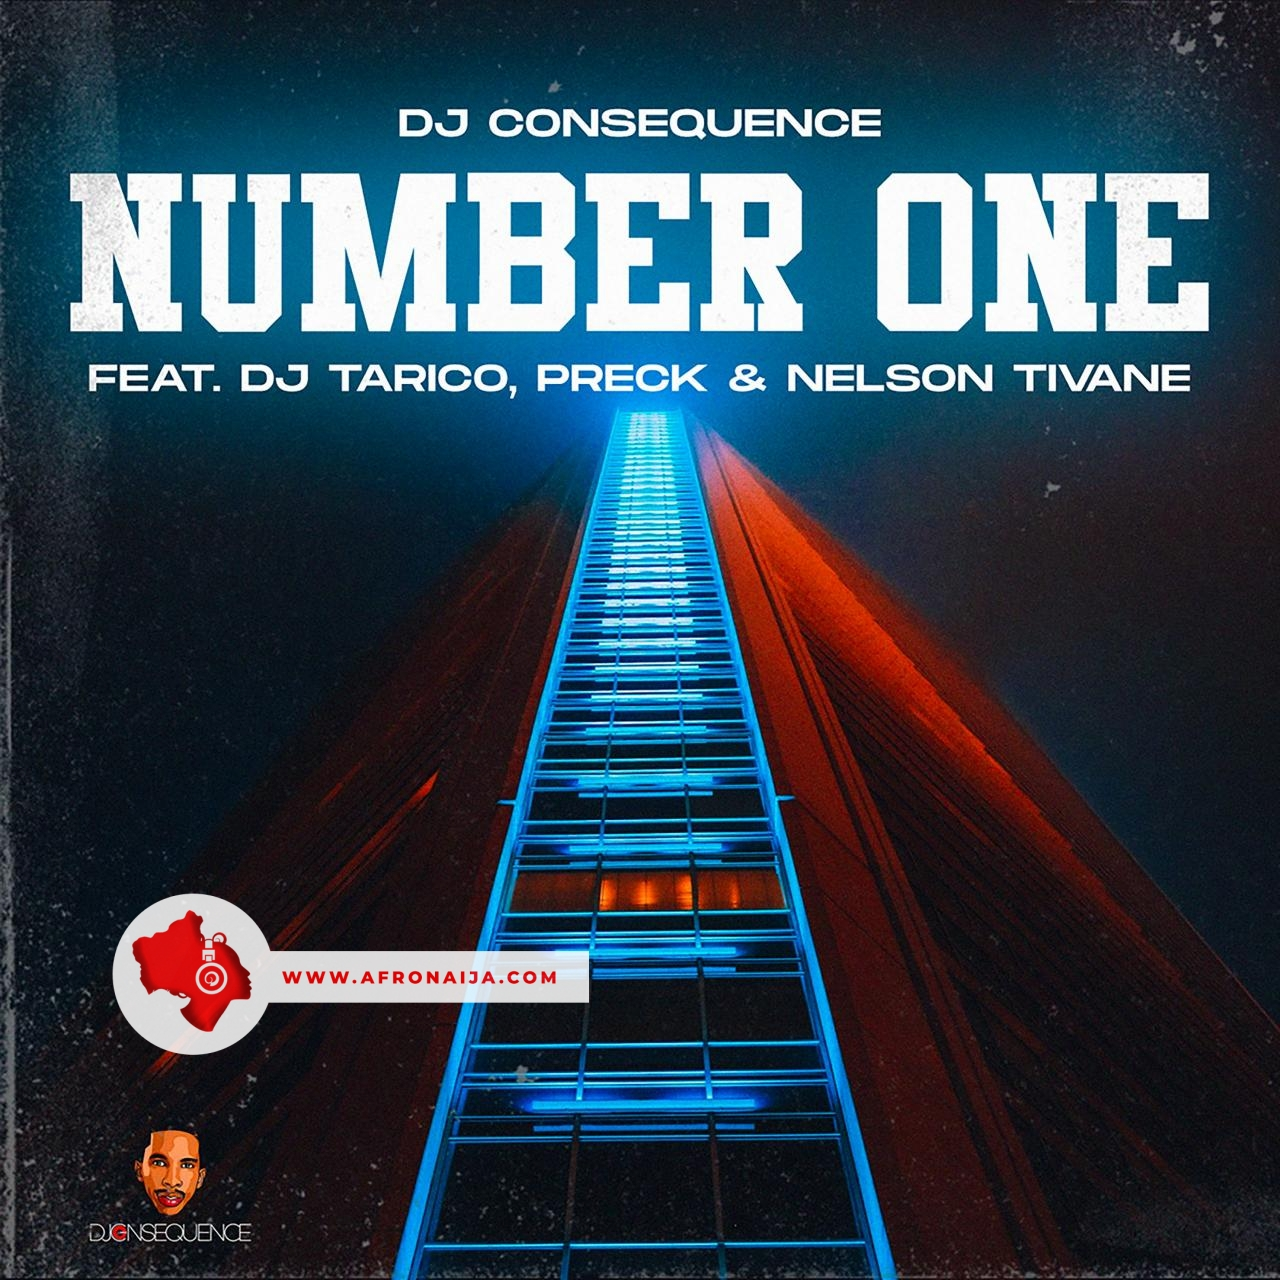 Dj Consequence Ft. Dj Tarico & Preck & Nelson Tivane - Number One